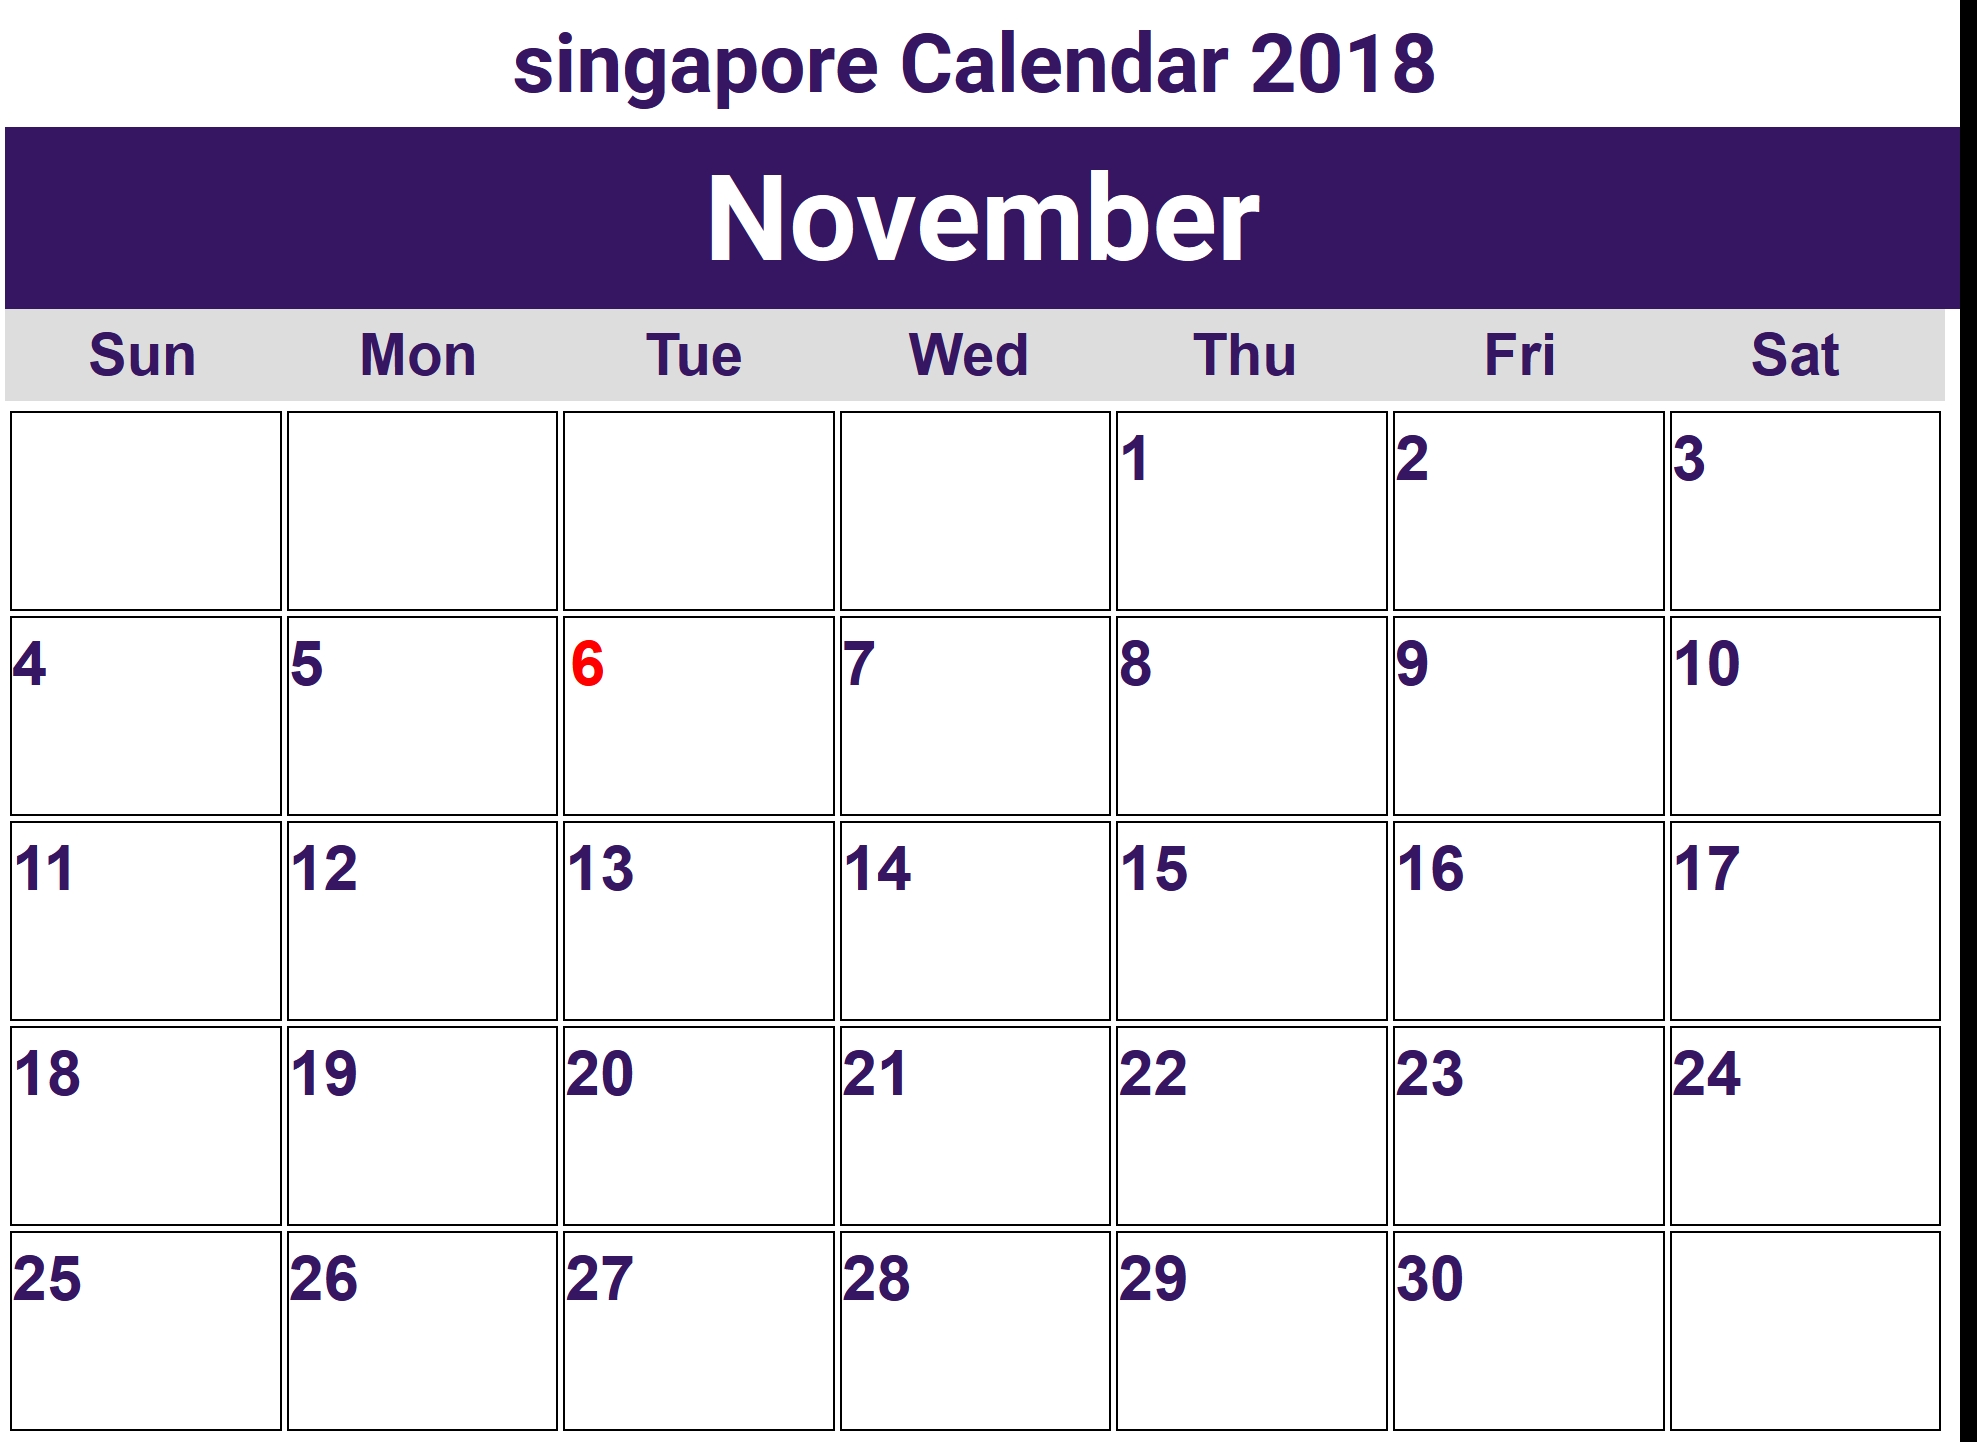 November 2018 Calendar Singapore Holidays Free March 2019 Calendar